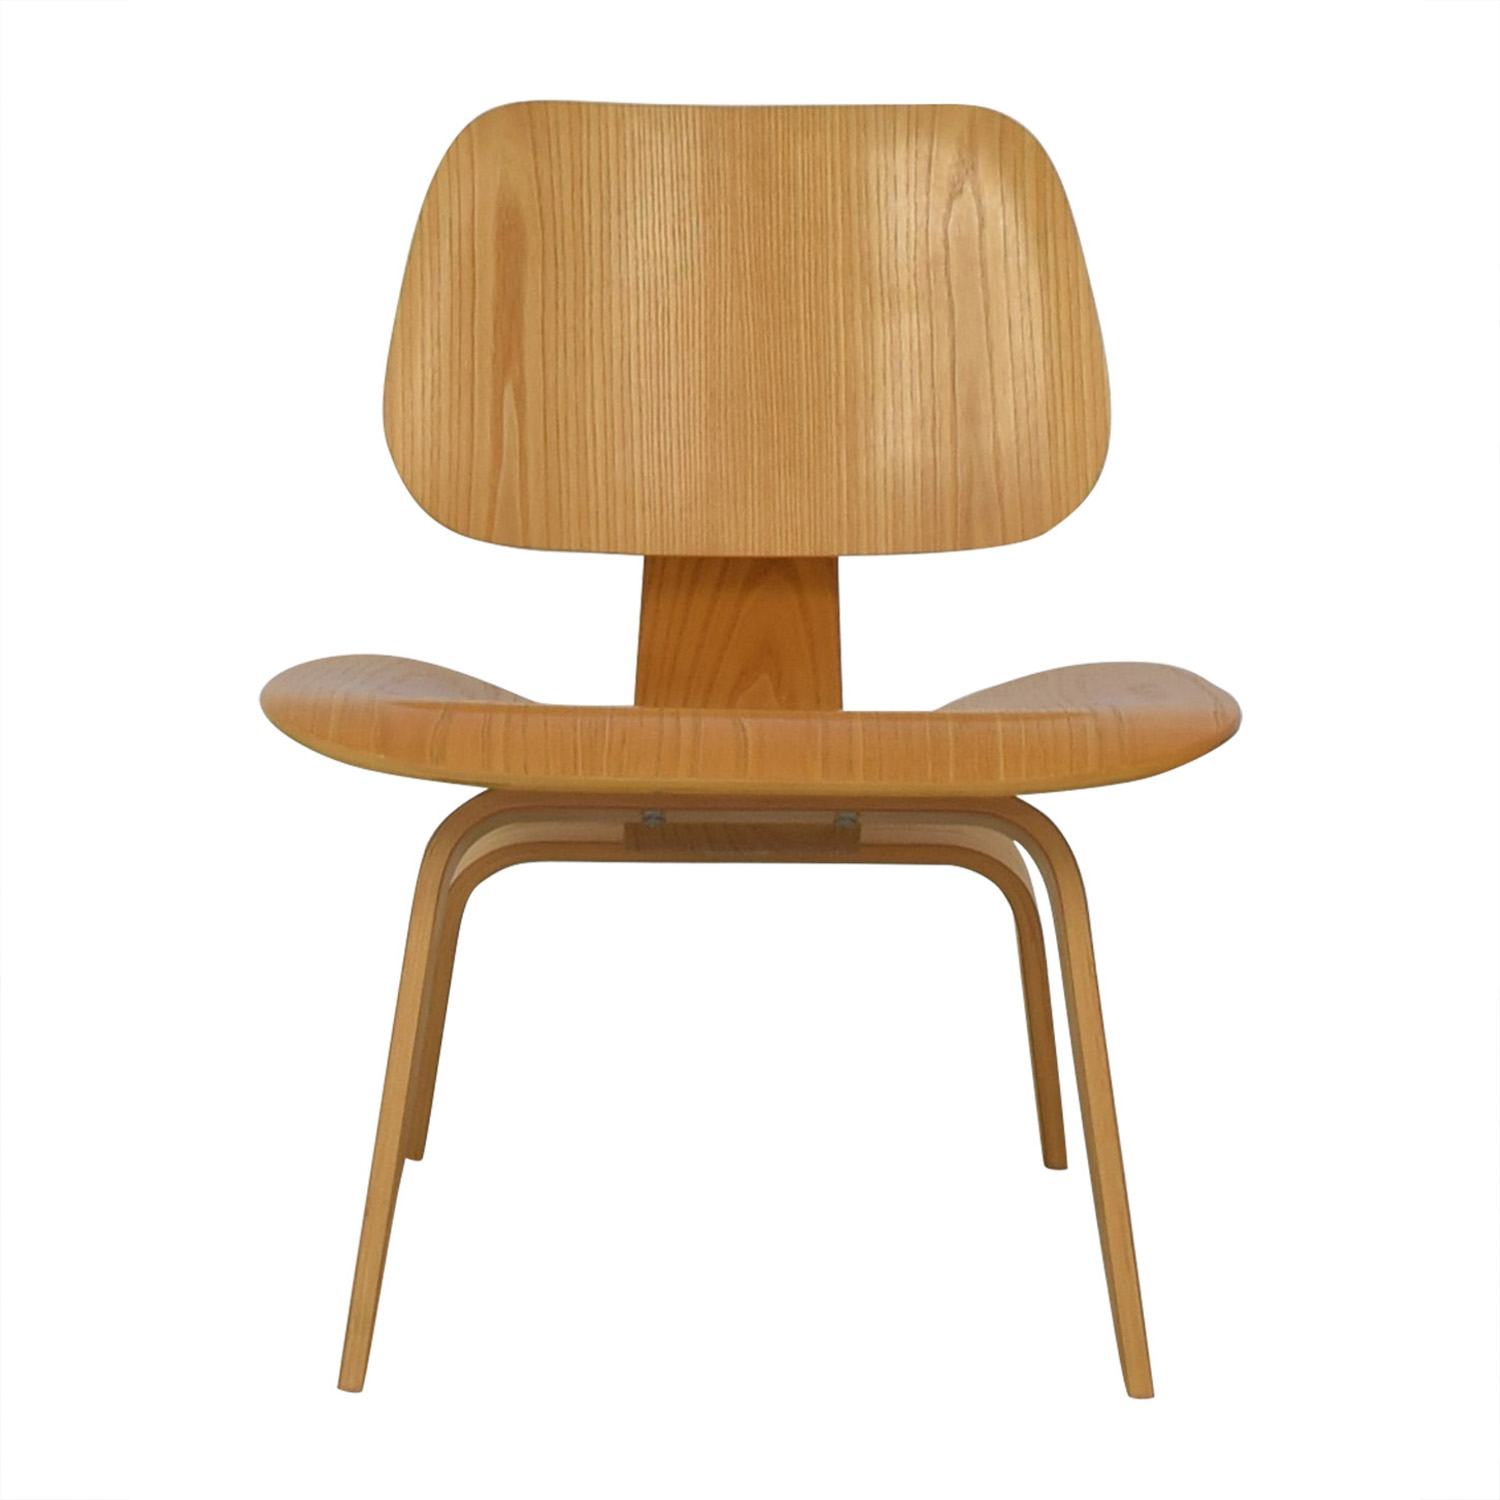 Design Within Reach Design Within Reach Herman Miller Eames Molded Plywood Lounge Chair